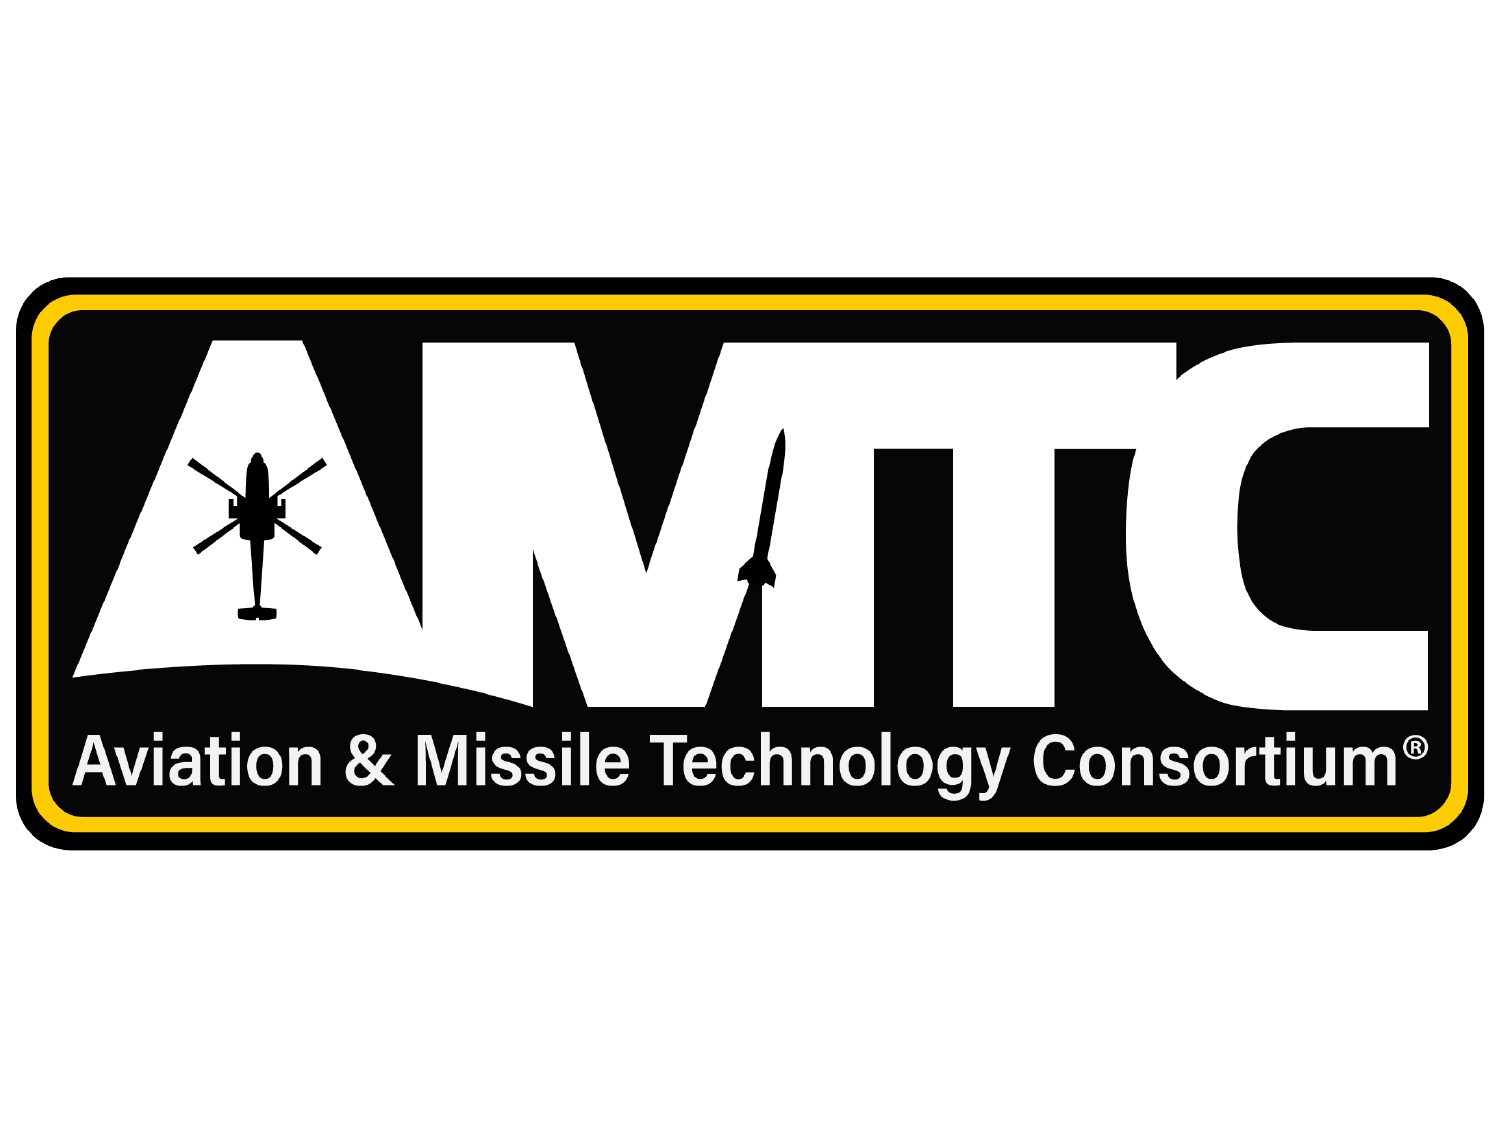 Aviation & Missile Technology Consortium (AMTC)